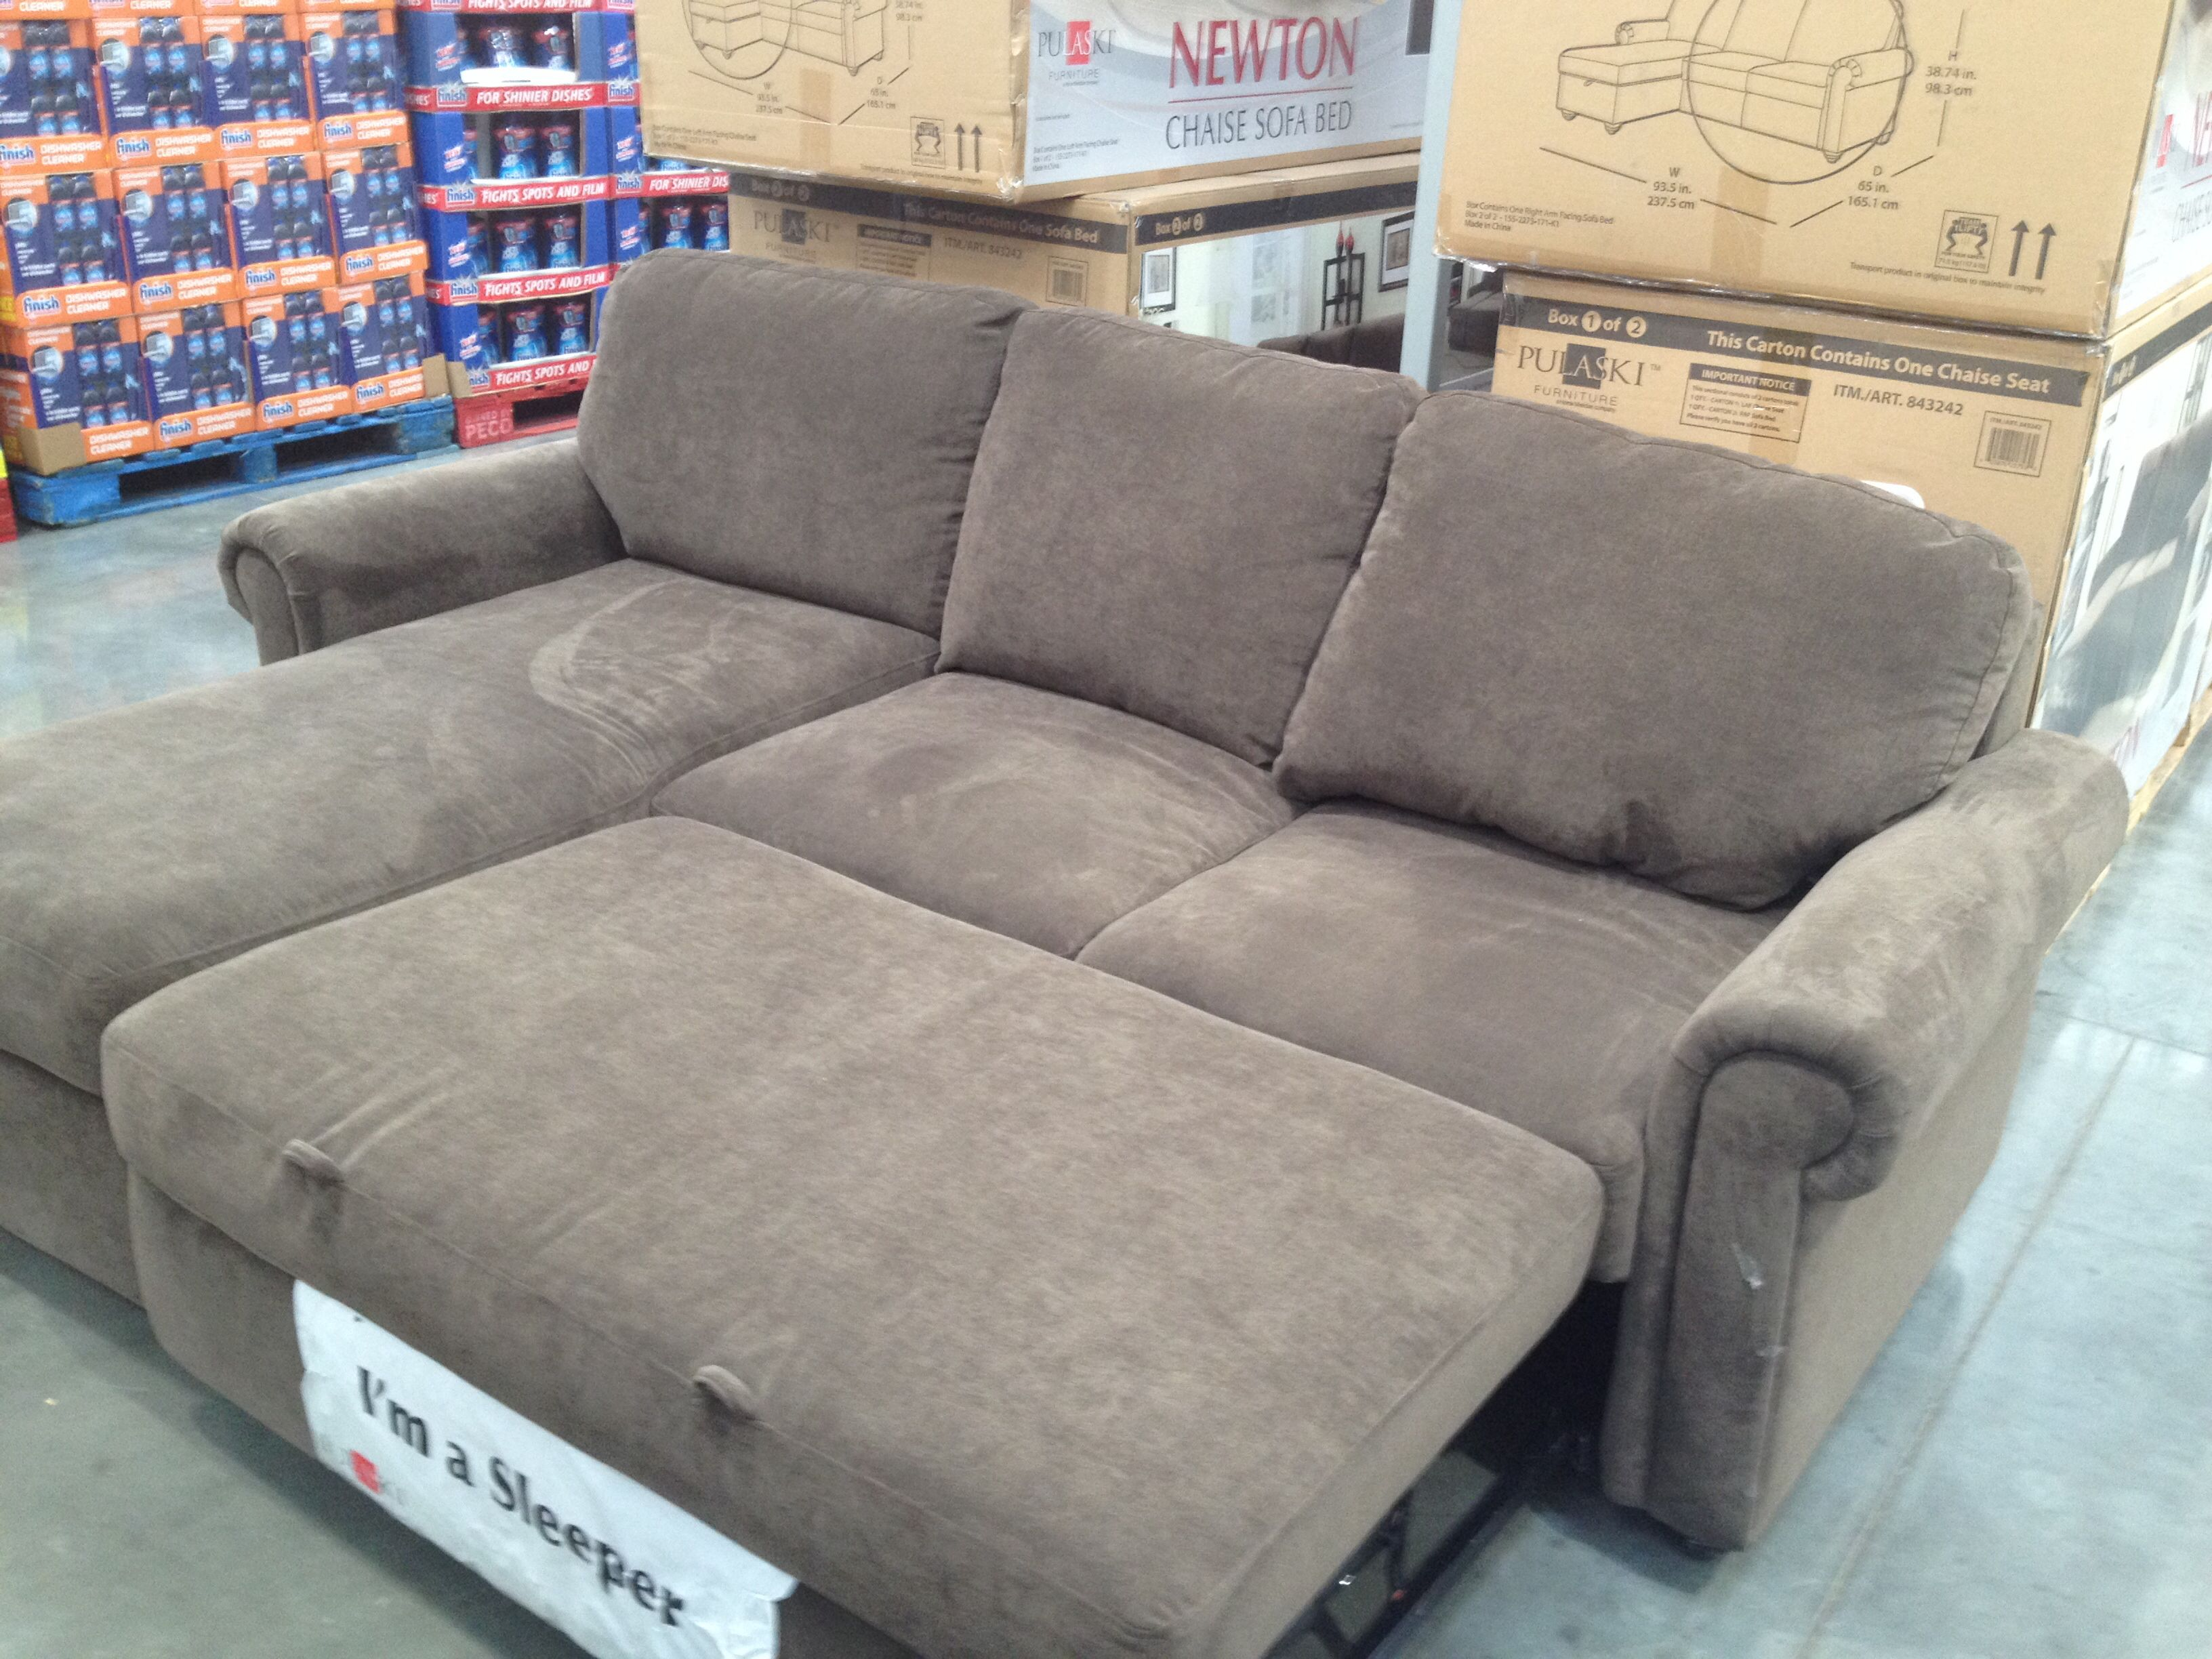 Sofa from Costco. Pull out cushion transforms it into a ...